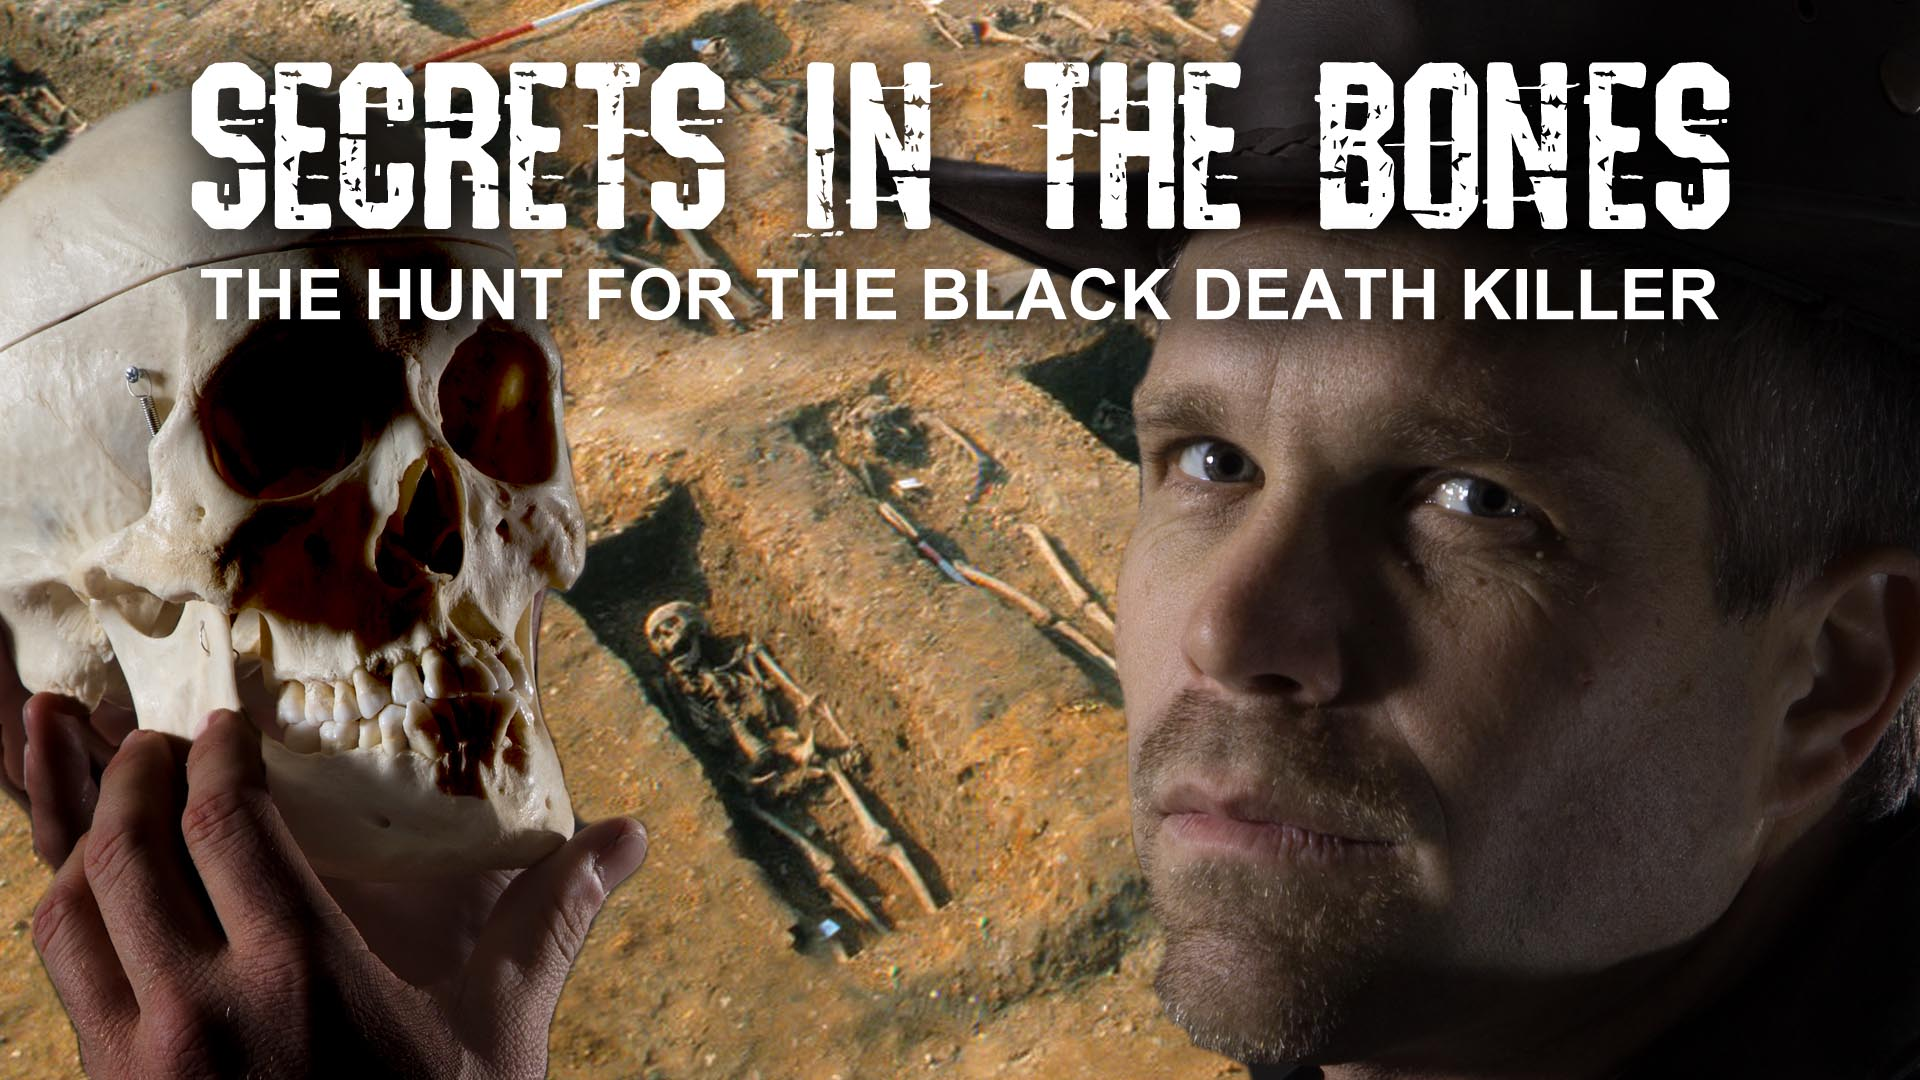 Secrets in the Bones: The Hunt for the Black Death Killer